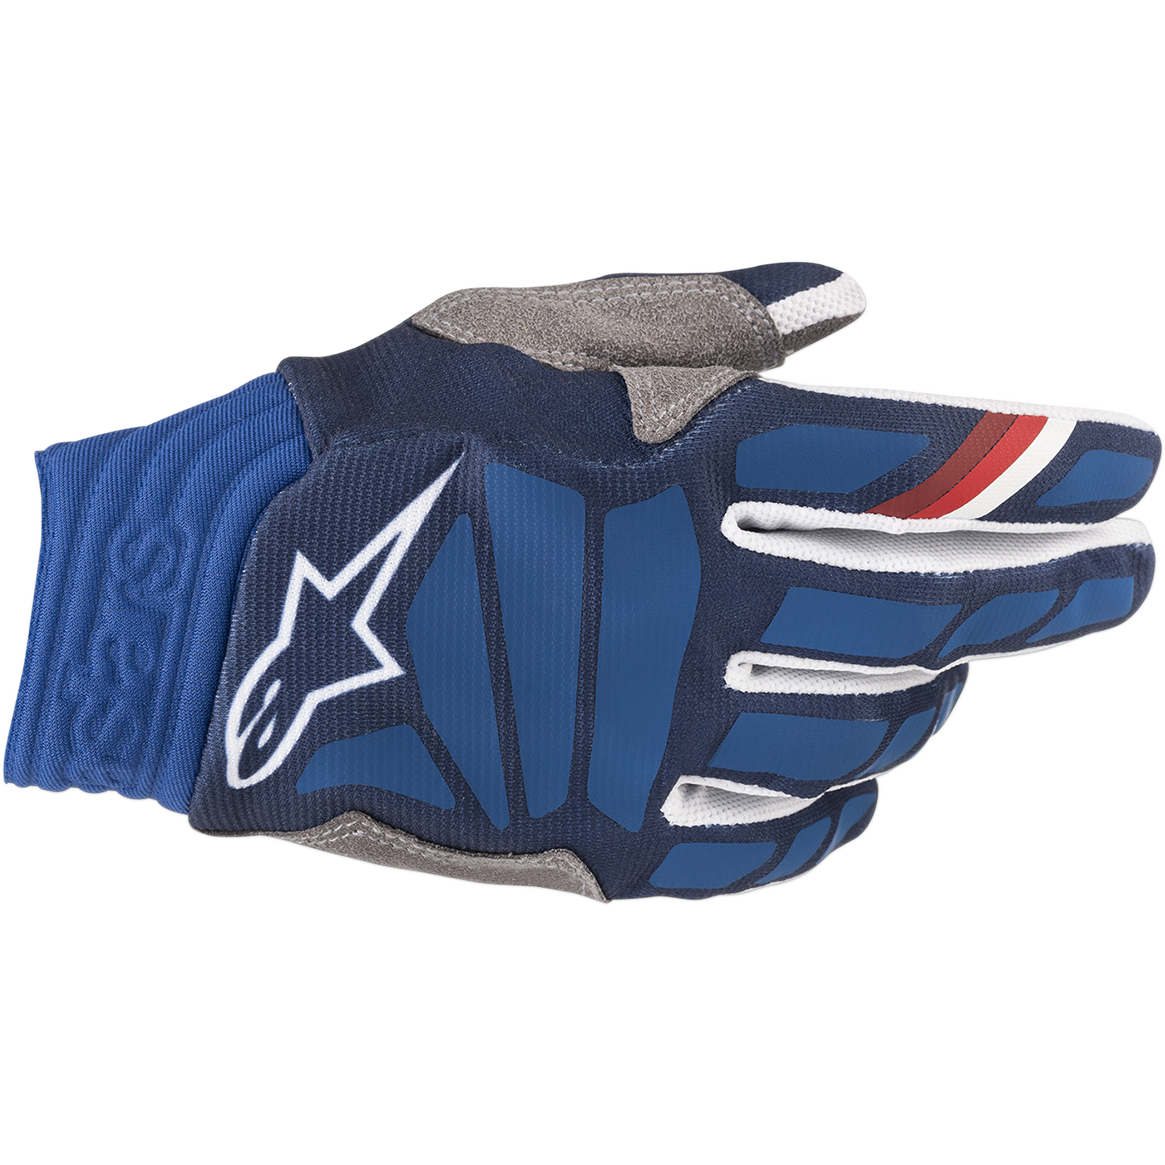 Aviator Gloves 2019